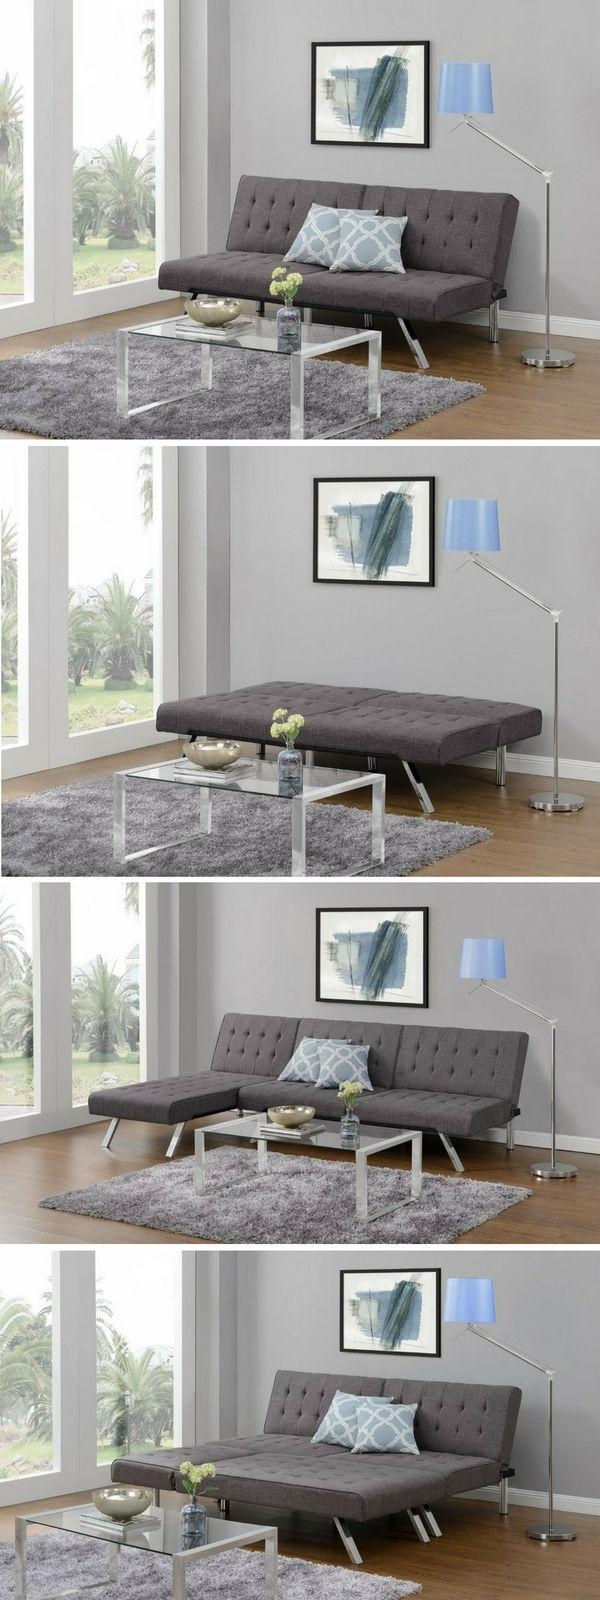 Best 25+ Sofa Beds Ideas On Pinterest | Sofa With Bed With Small Bedroom Sofas (Image 11 of 20)